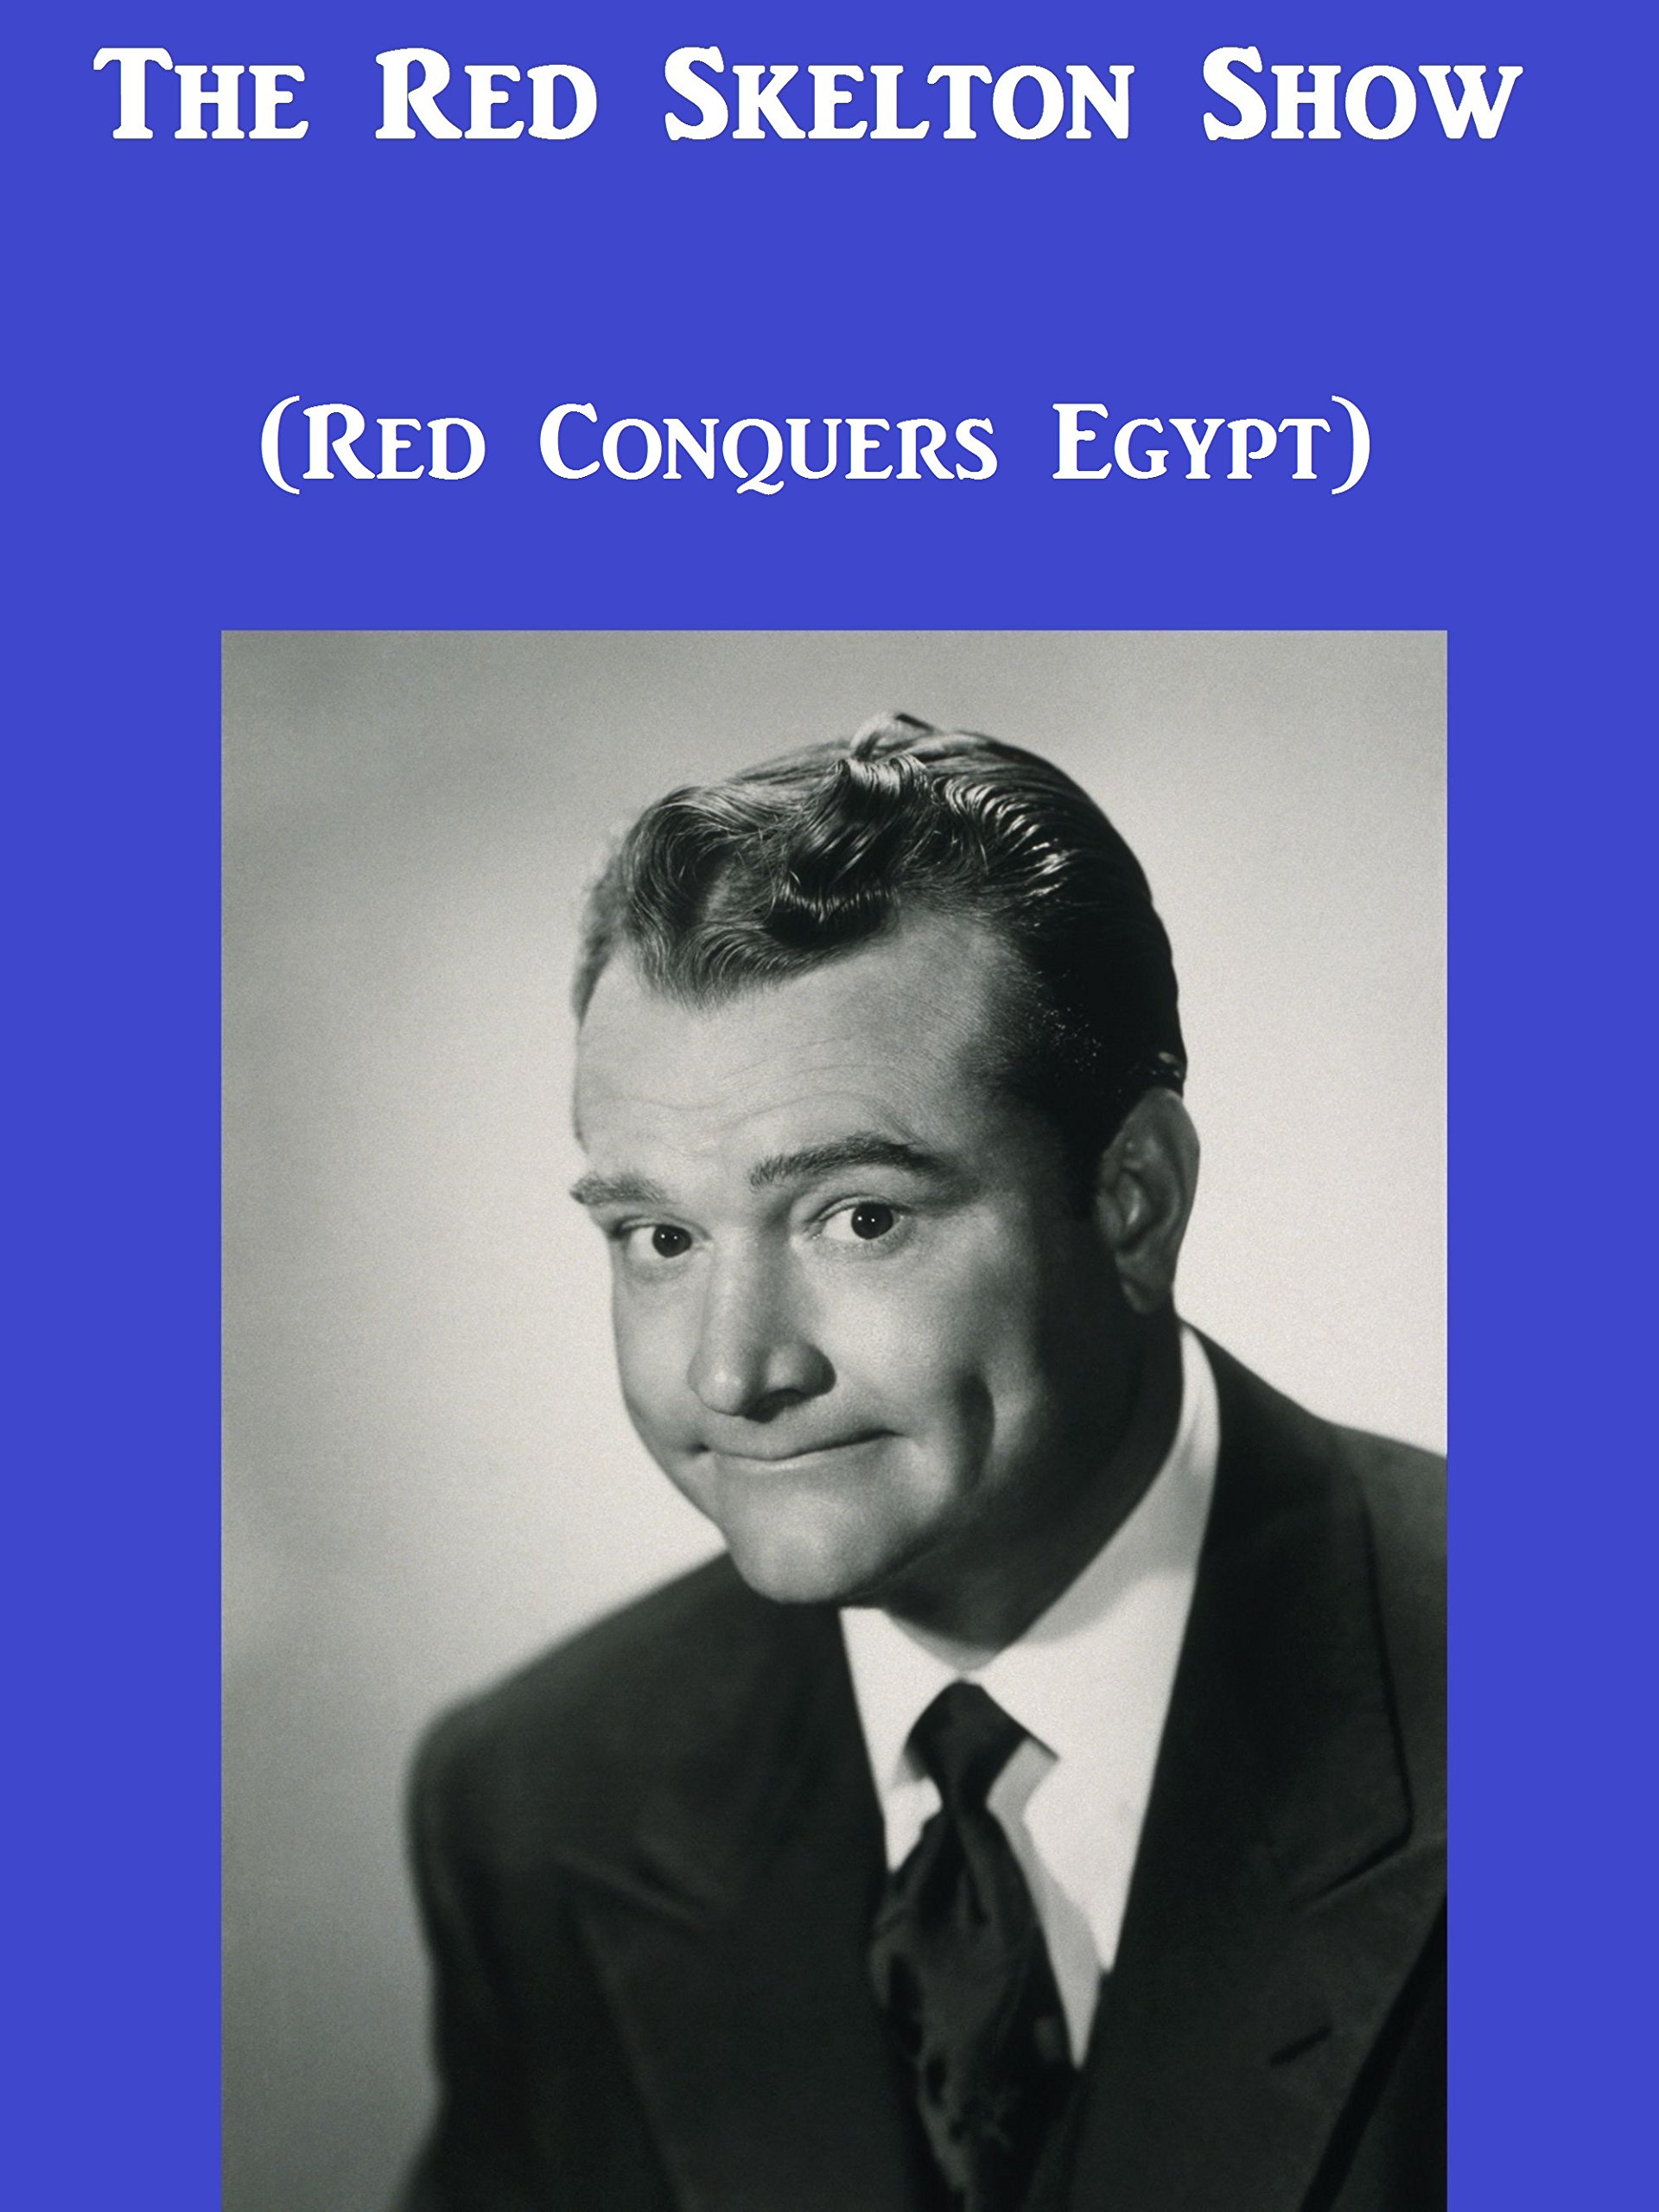 The Red Skelton Show (Red Conquers Egypt)